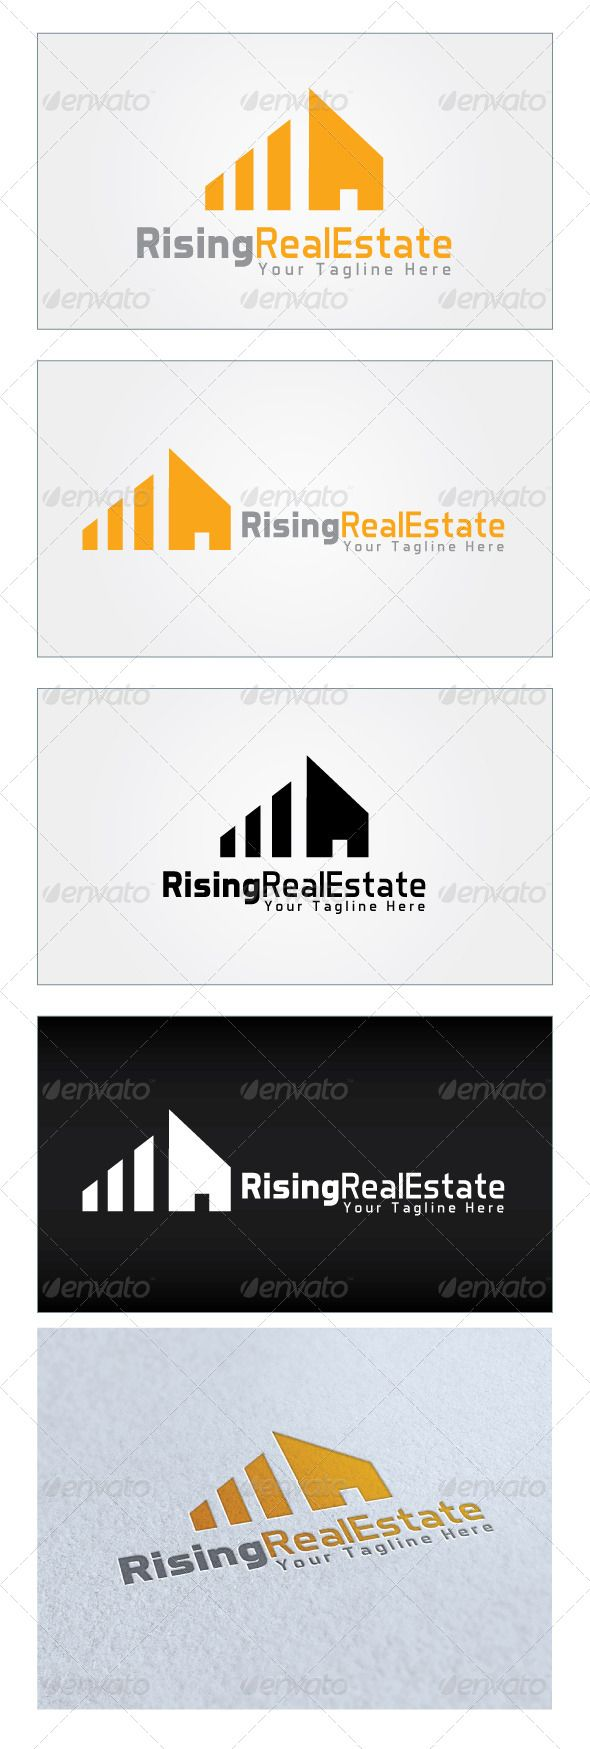 Rising Real Estate Logo